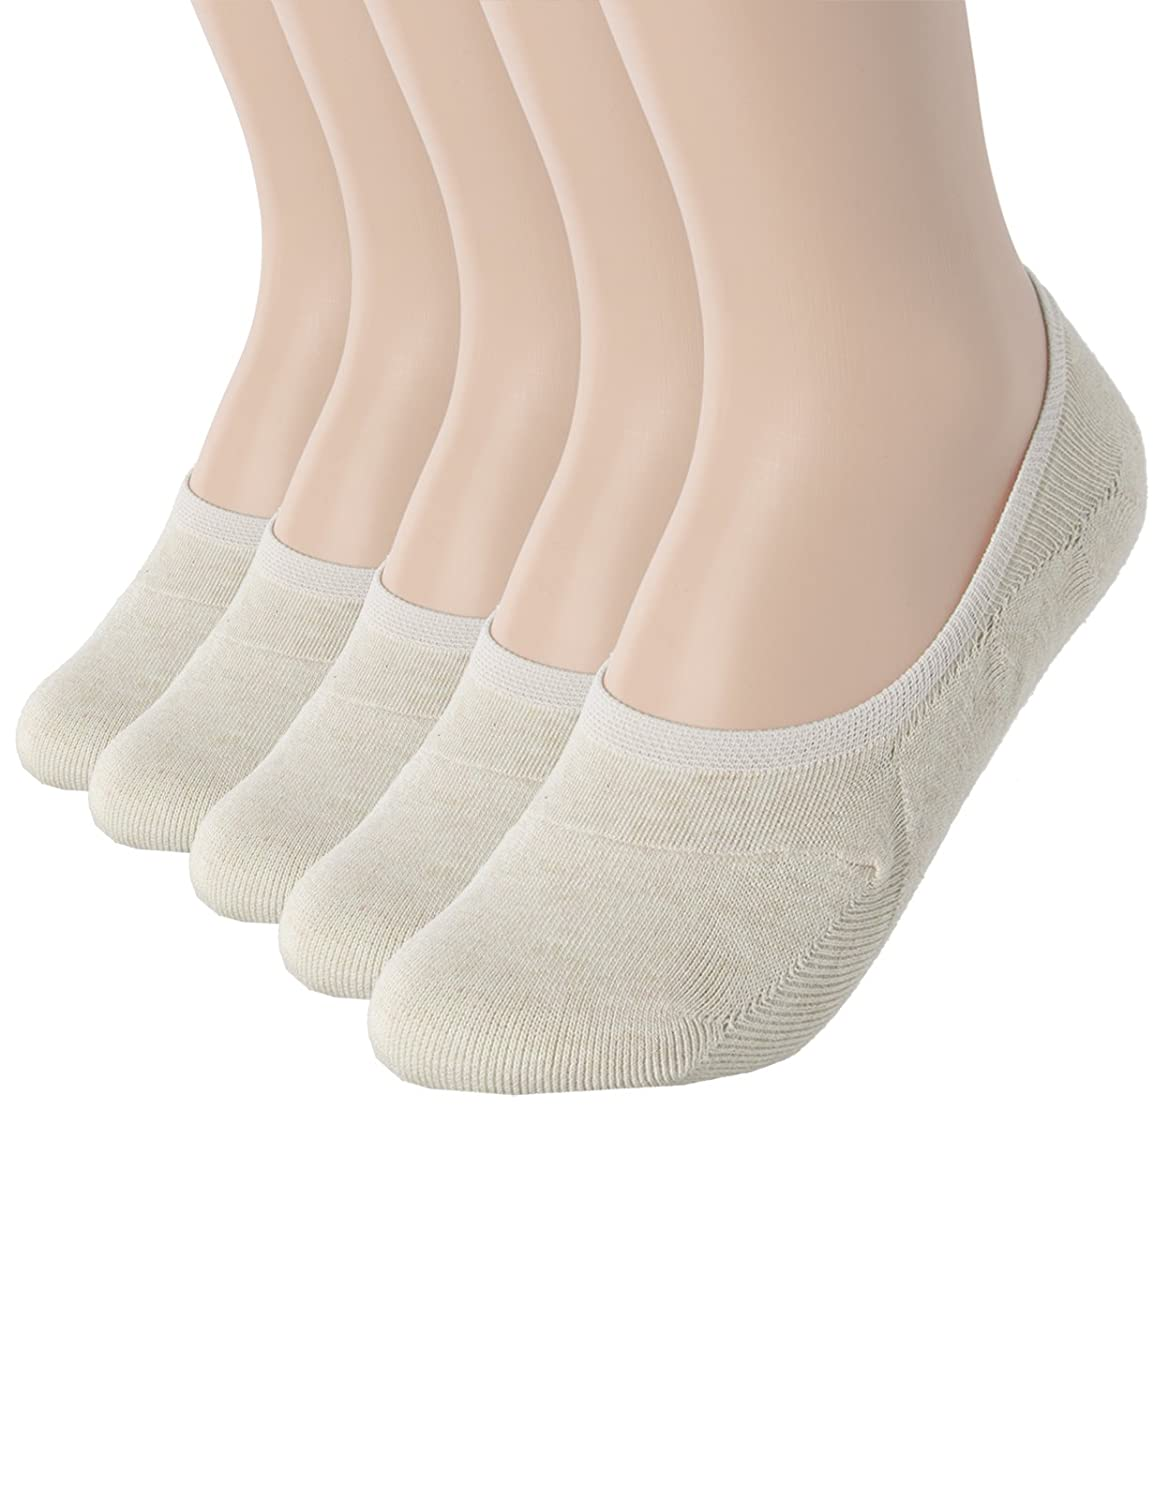 OSABASA Mens 1 to 10 Pack Casual No-Show Socks of Hidden Flat Boat Line with Anti-Slip Grip